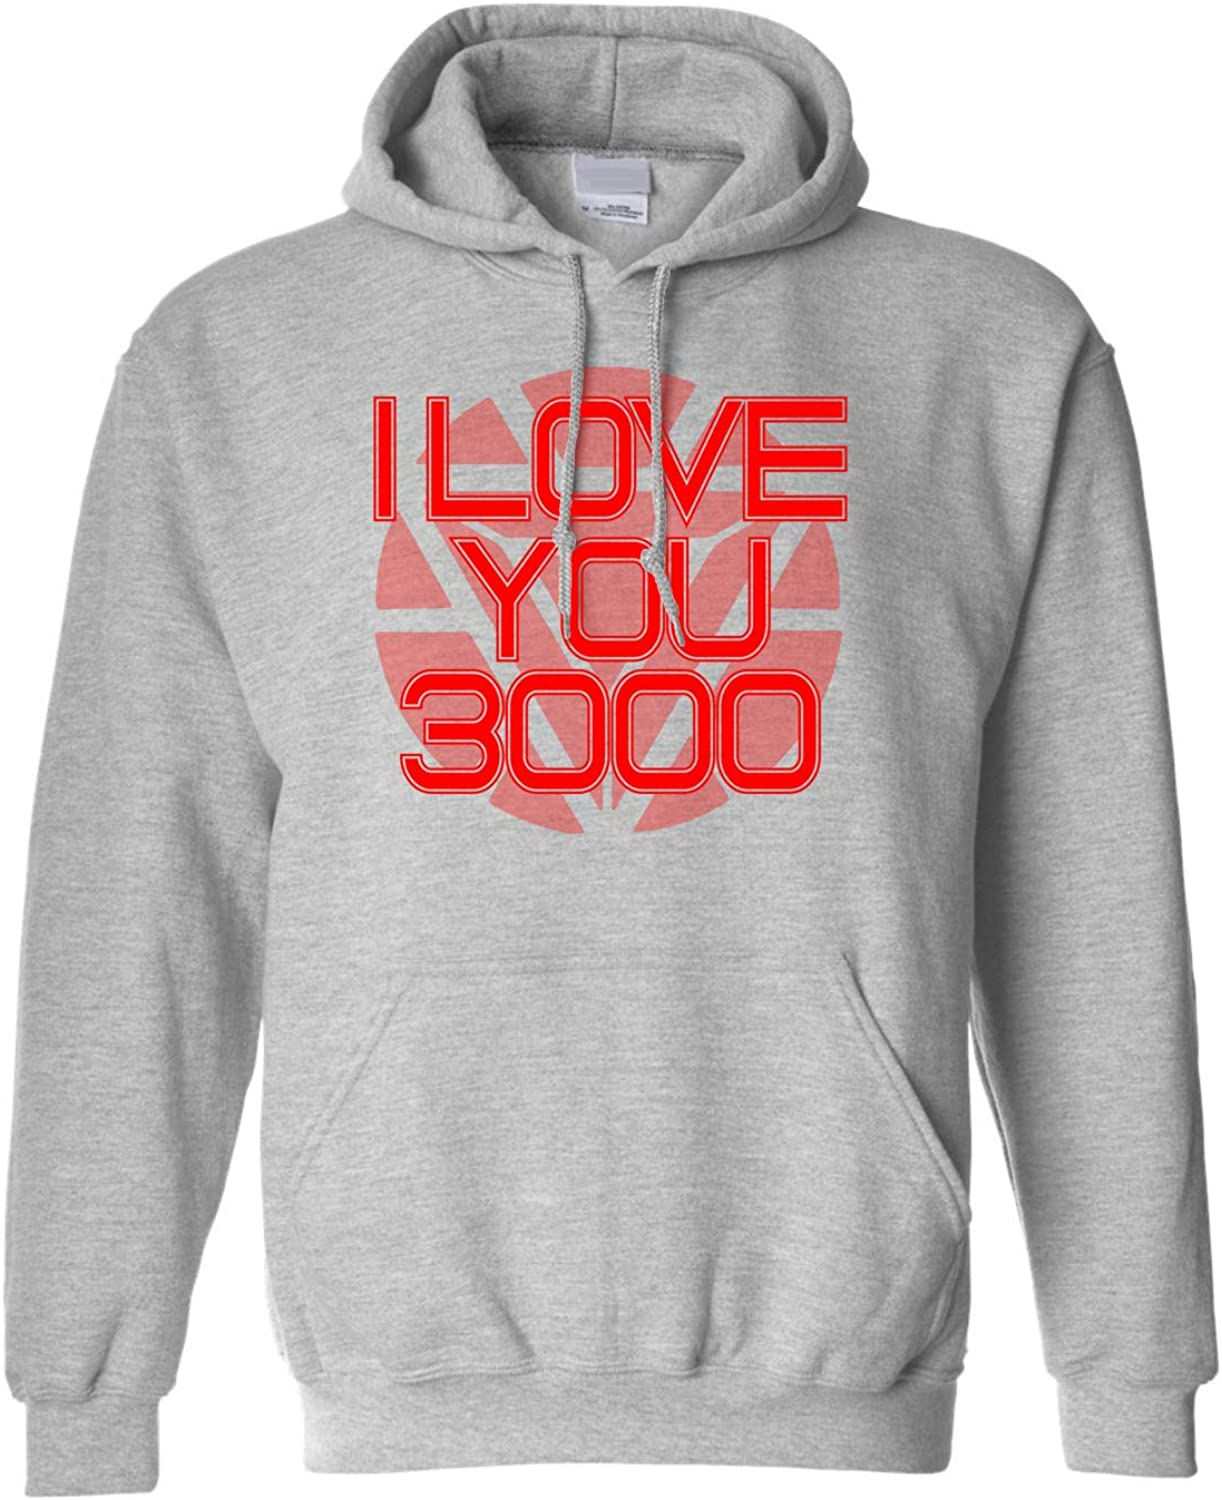 Squatch King Threads I Outlet sale feature Love 3000 Adult Hoodie You Large-scale sale Sweatshirt